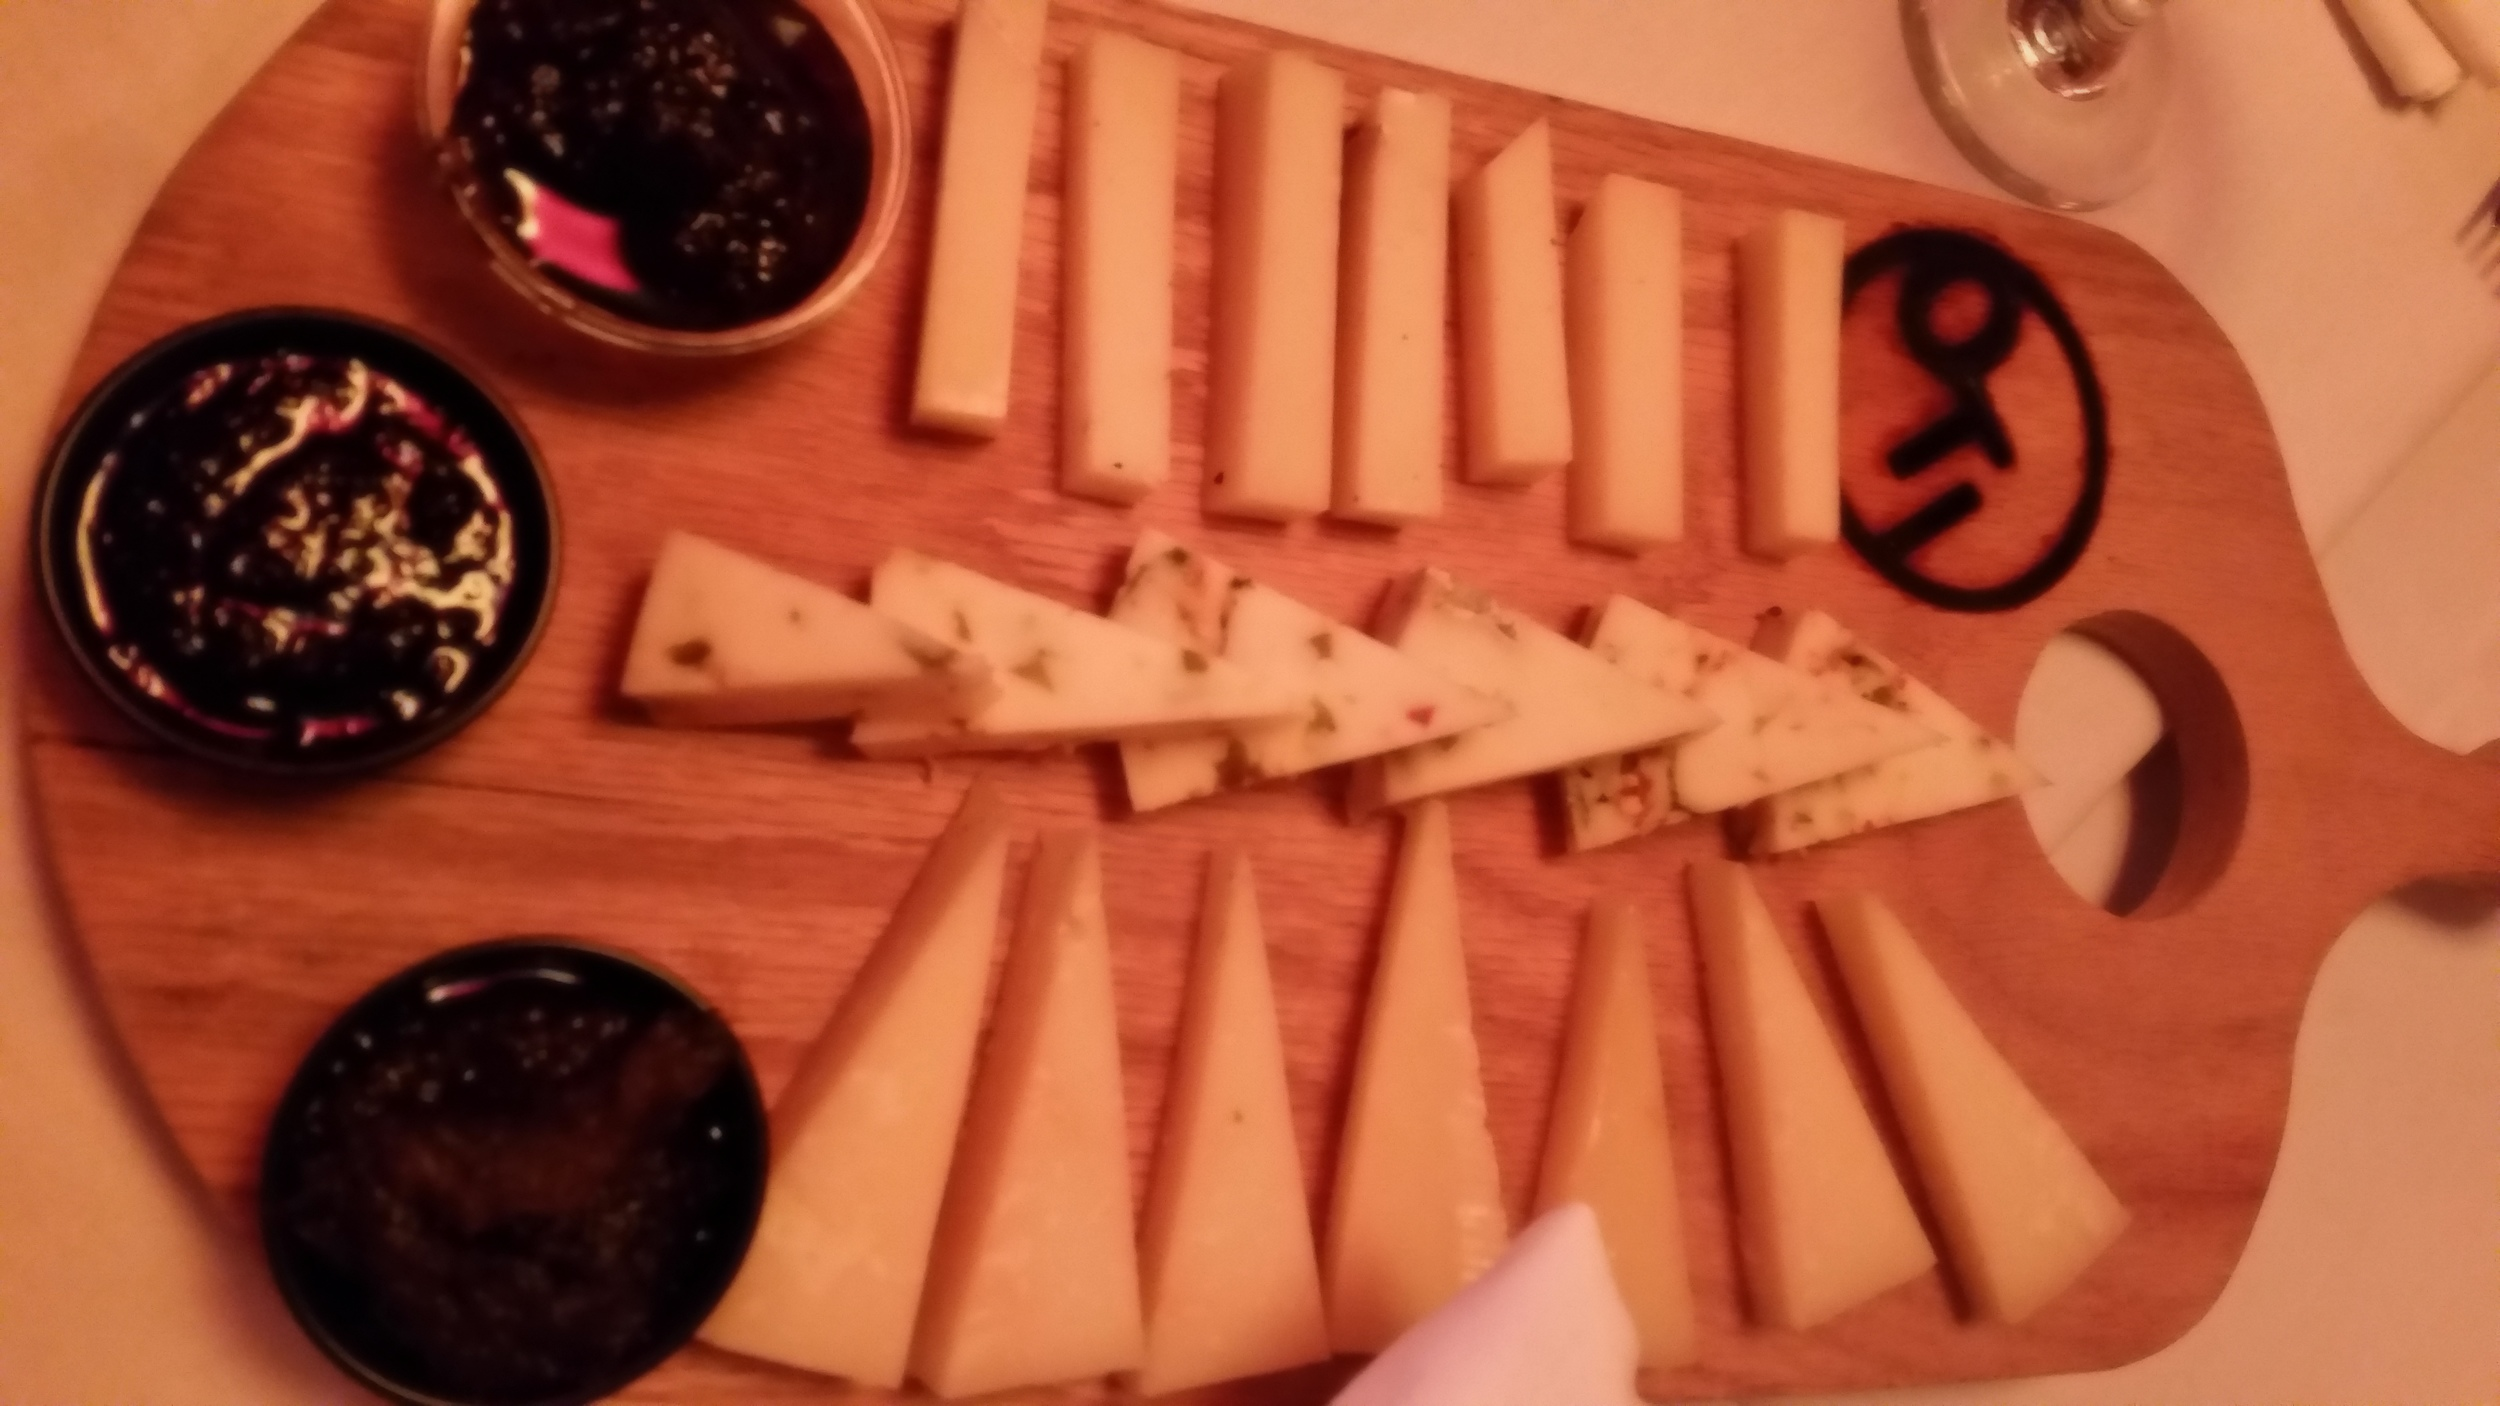 Homemade Marmalades (Top-Bottom: Onion, Hot Pepper, Eggplant) with Imported Cheeses at Ornella Trattoria Italiana.